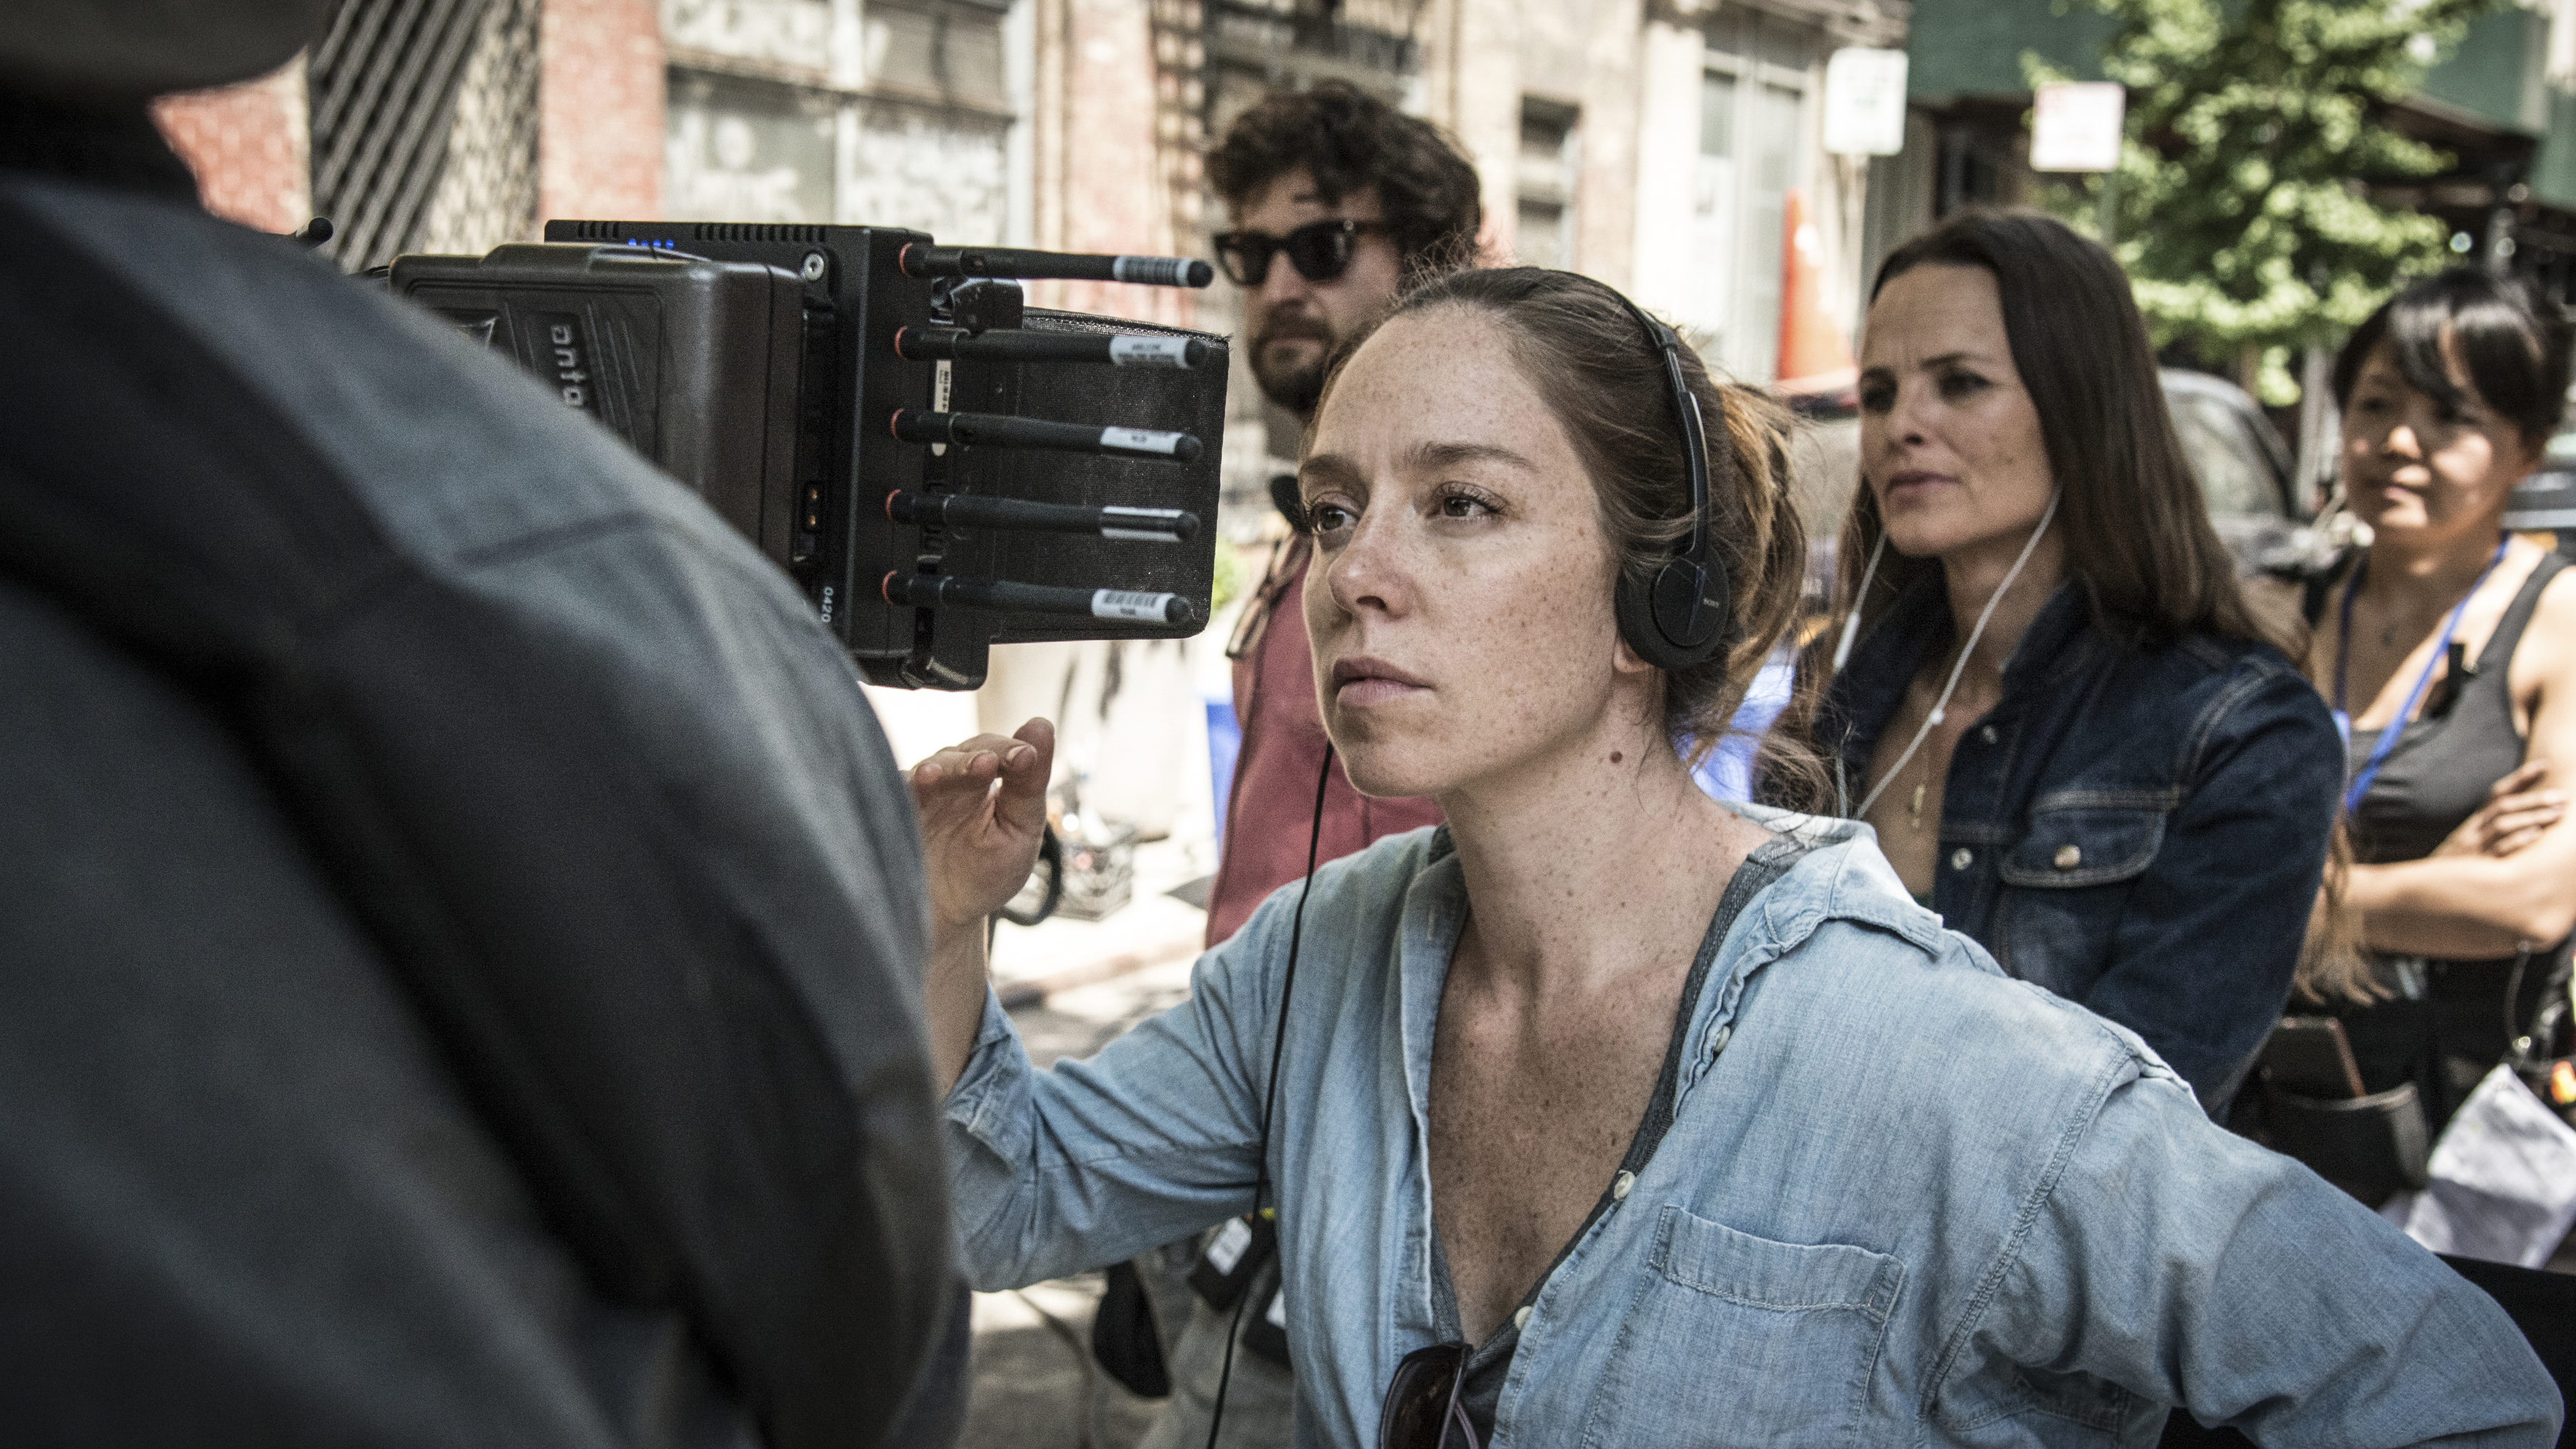 'Tallulah' director Sian Heder on-set of her new film, 'Tallulah.'